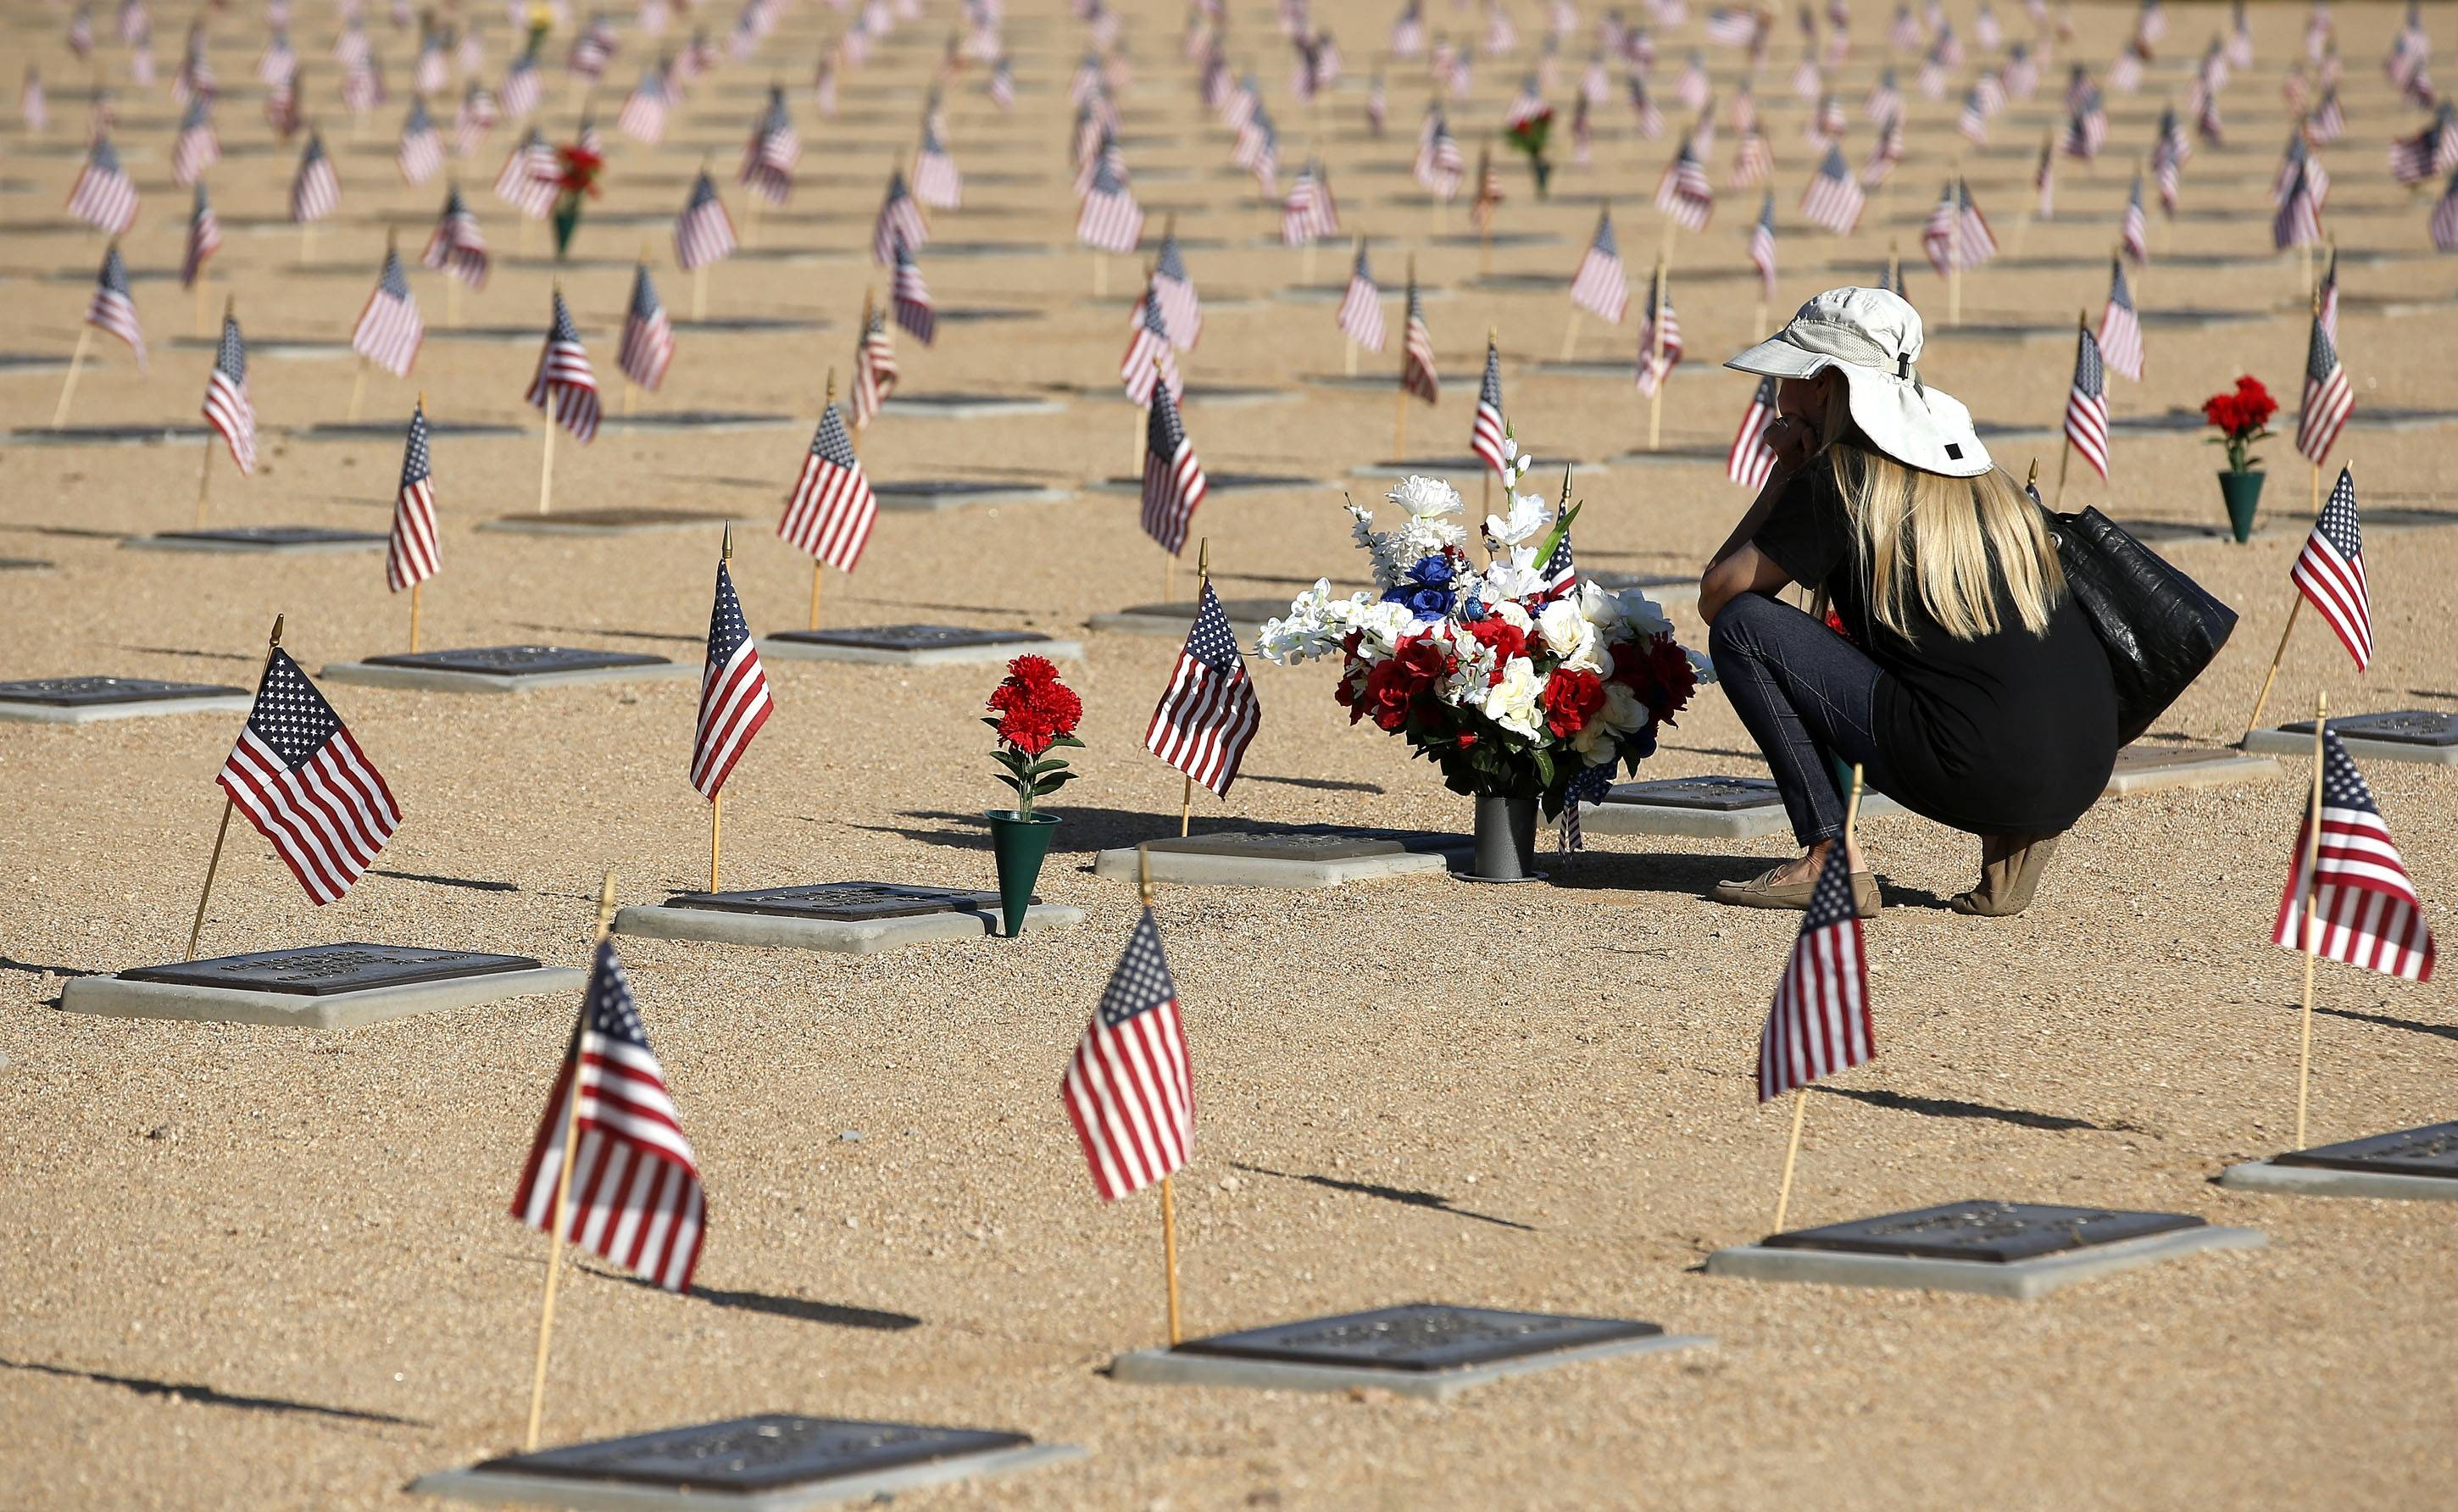 A visitor to the National Memorial Cemetery of Arizona pauses at a grave on Memorial Day, Monday, May 26, 2014, in Phoenix.